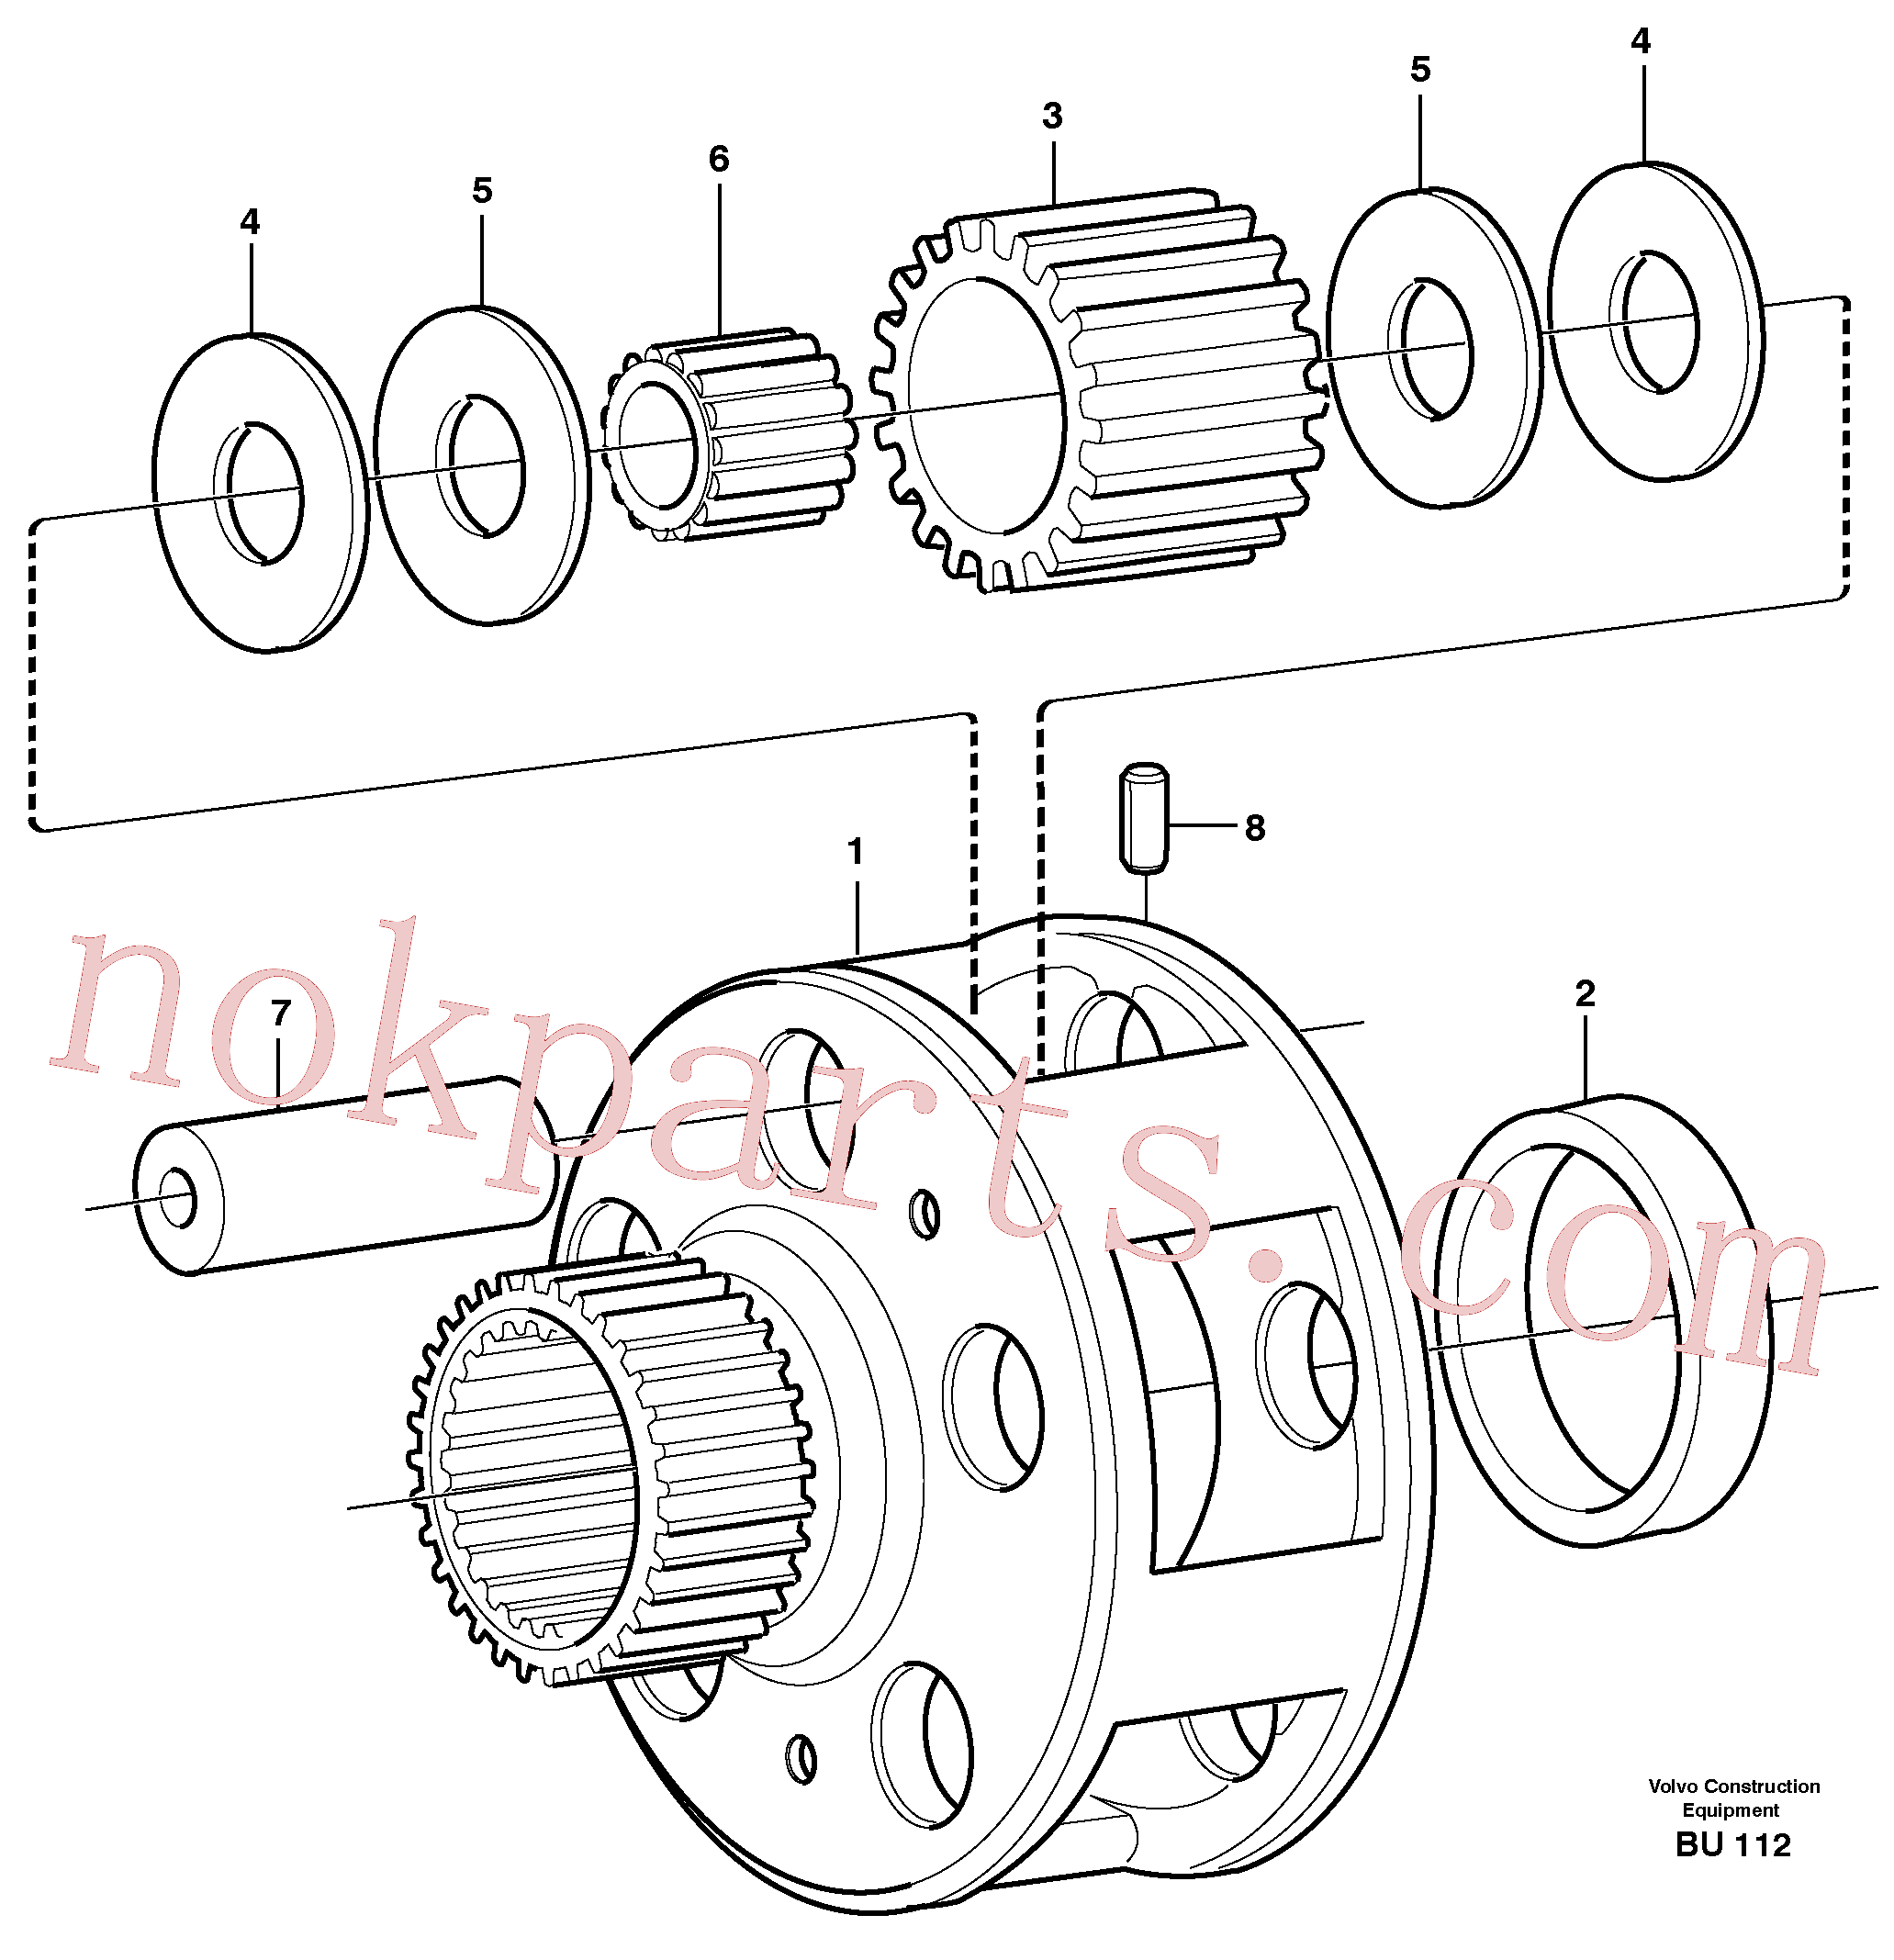 VOE11036753 for Volvo Planet kit, stage 4(BU112 assembly)